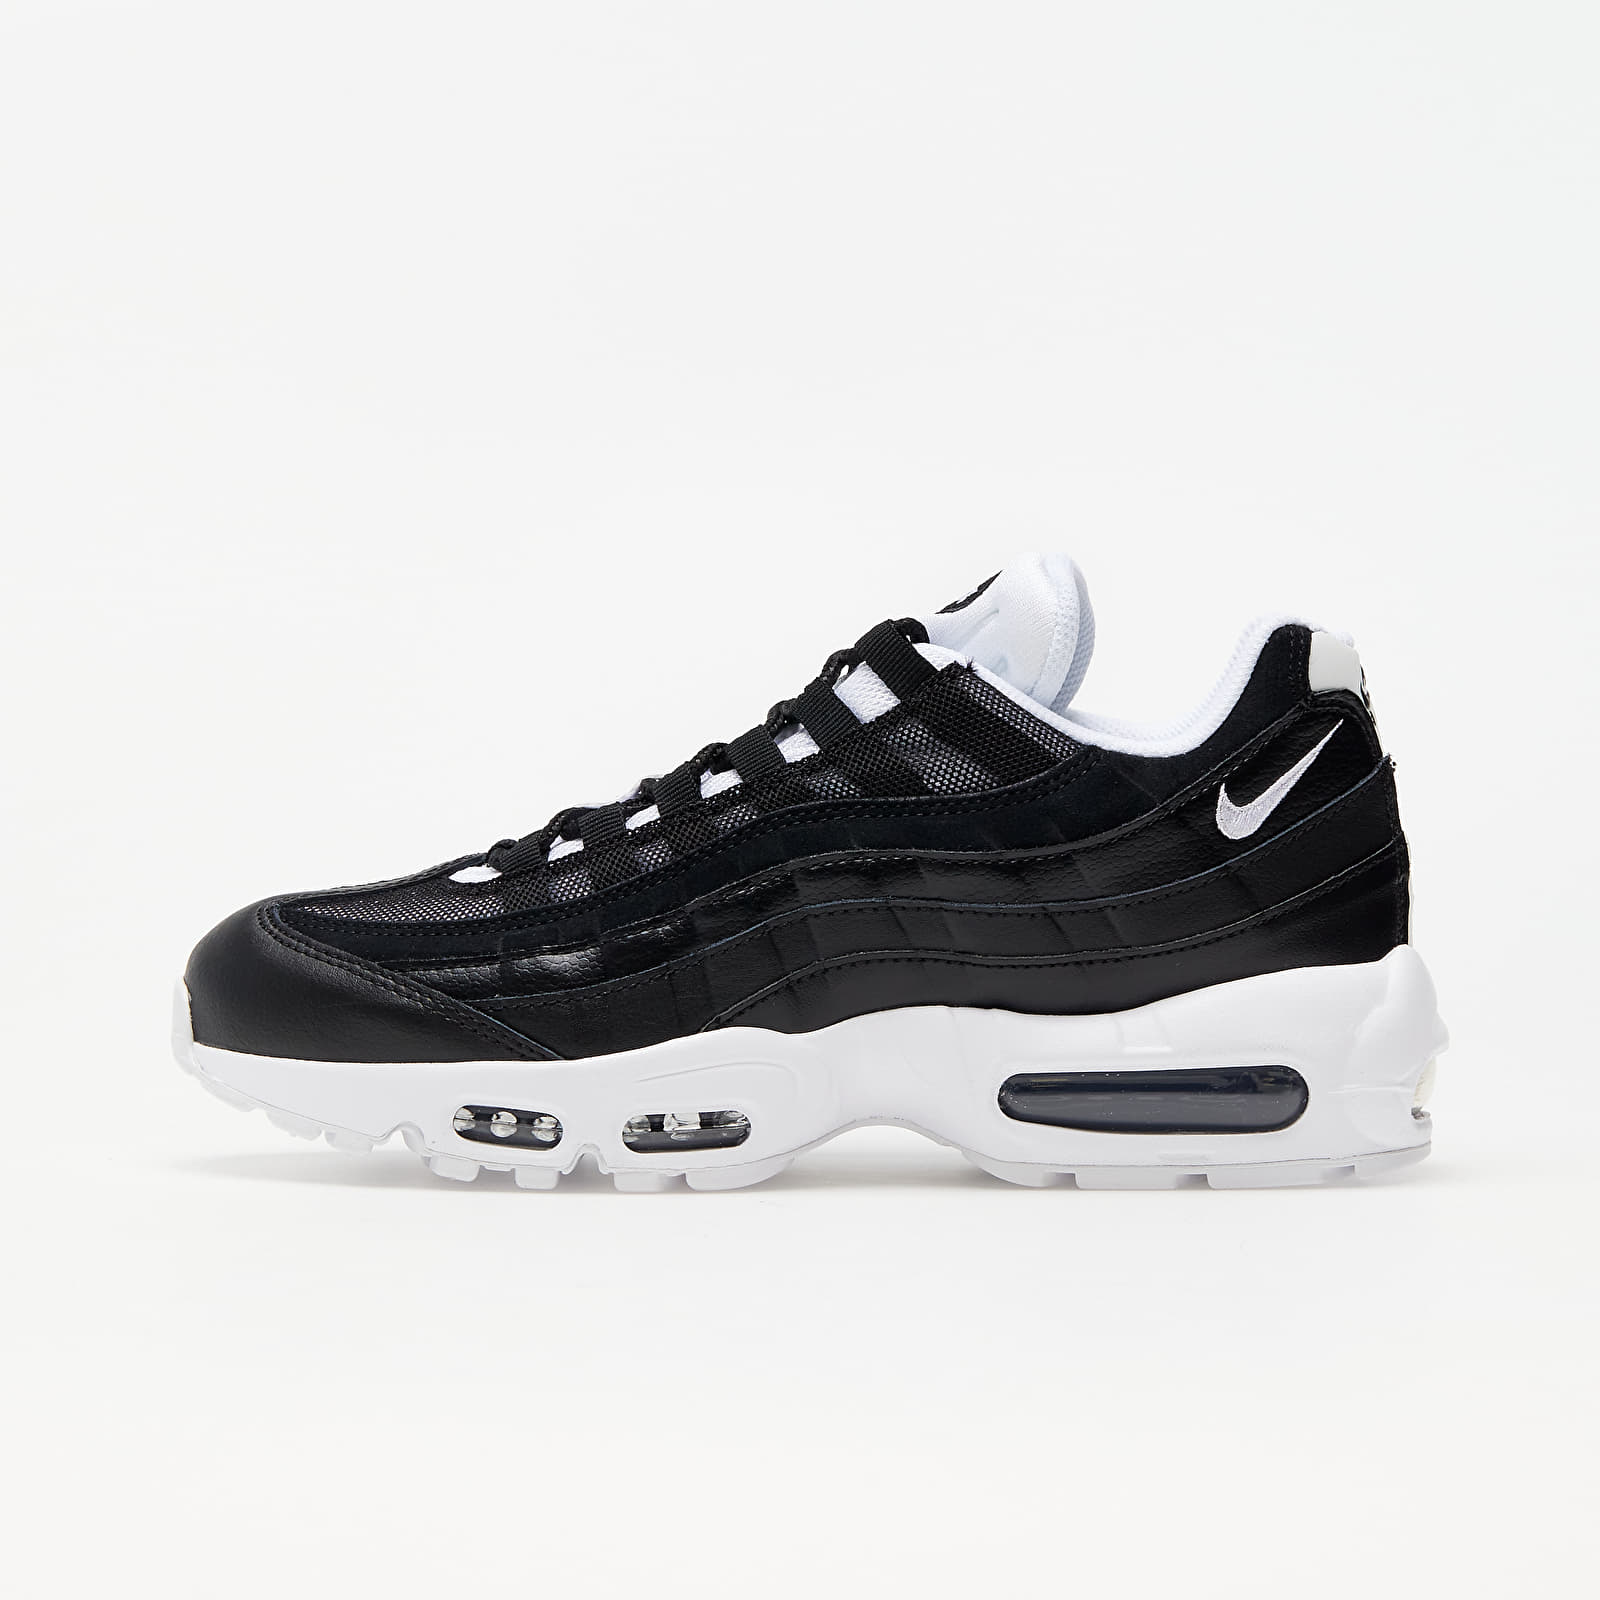 Nike Air Max 95 Essential Black/ White EUR 42.5